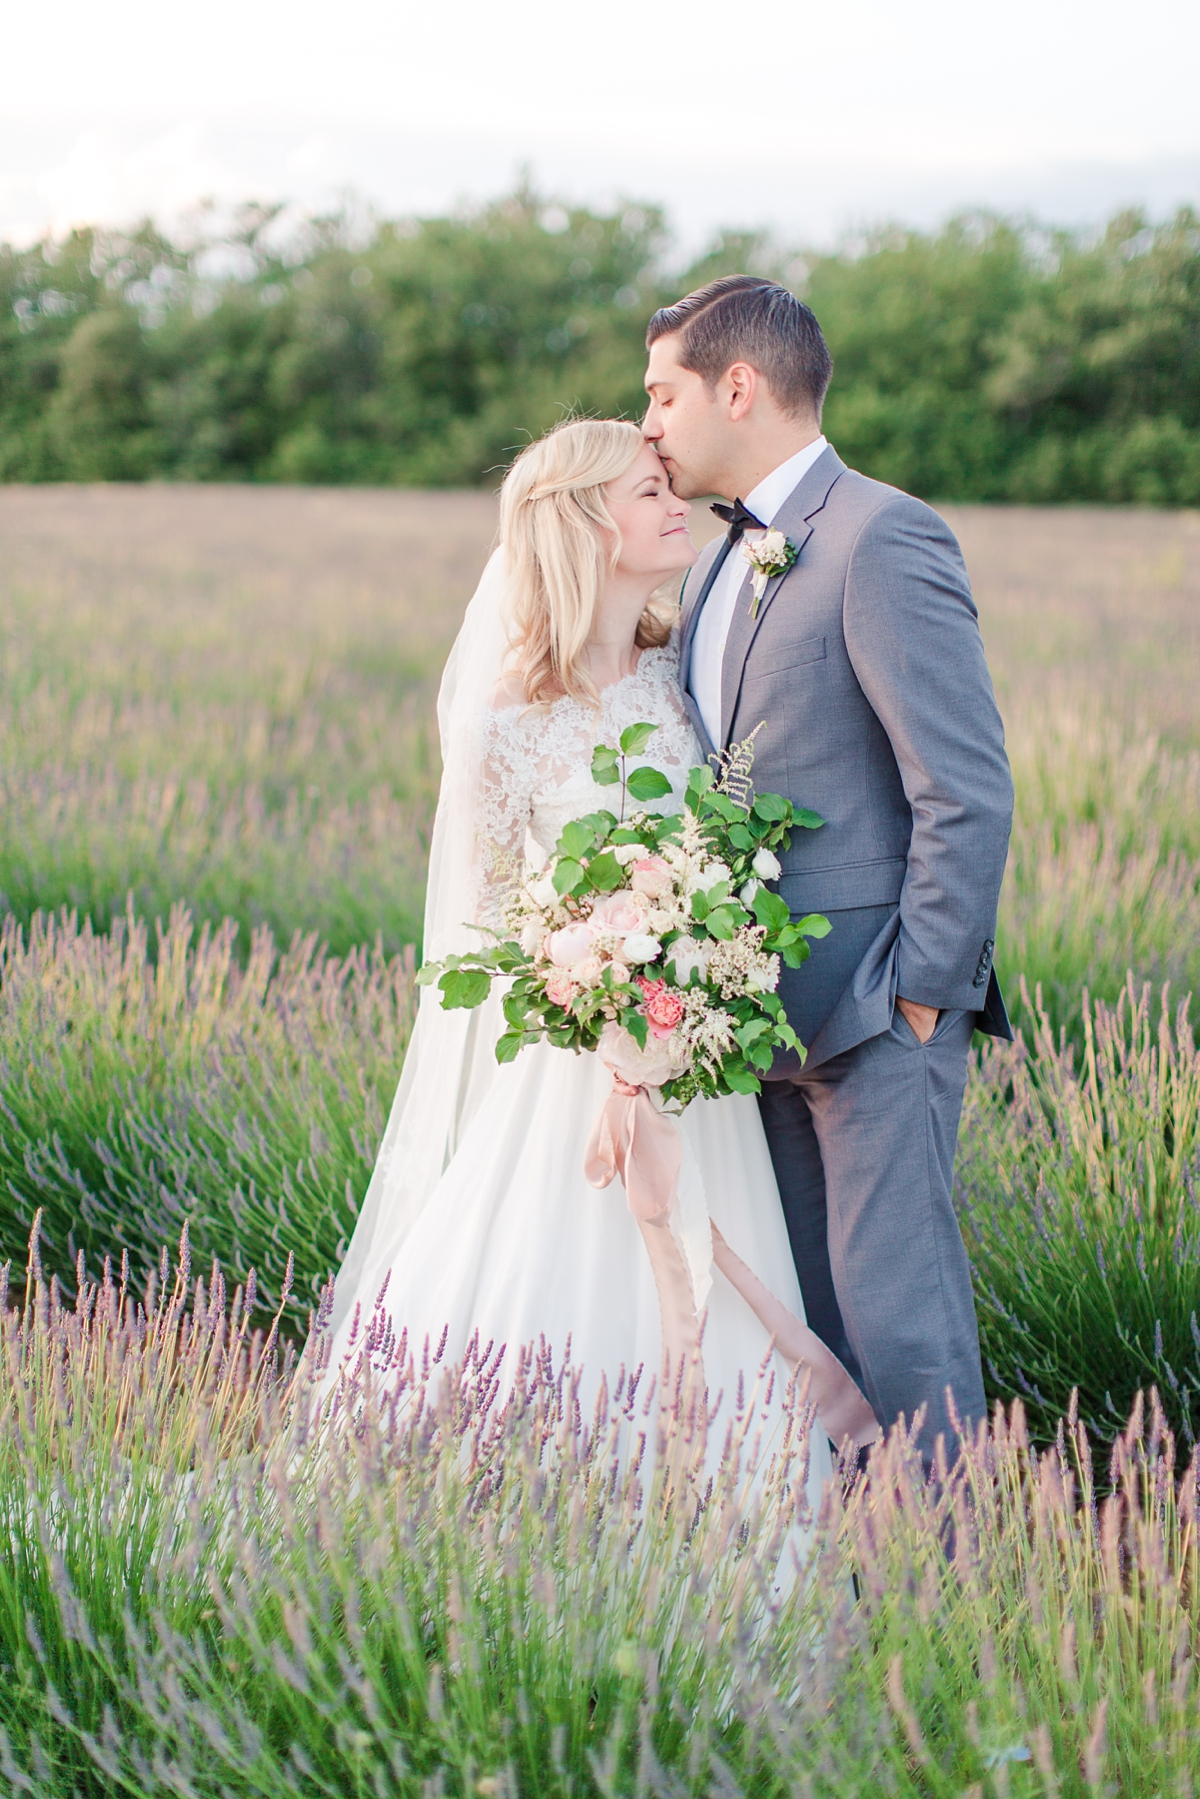 wedding portraits in frenchlavender fields in provence, Franve by photographer Katelyn James_1828